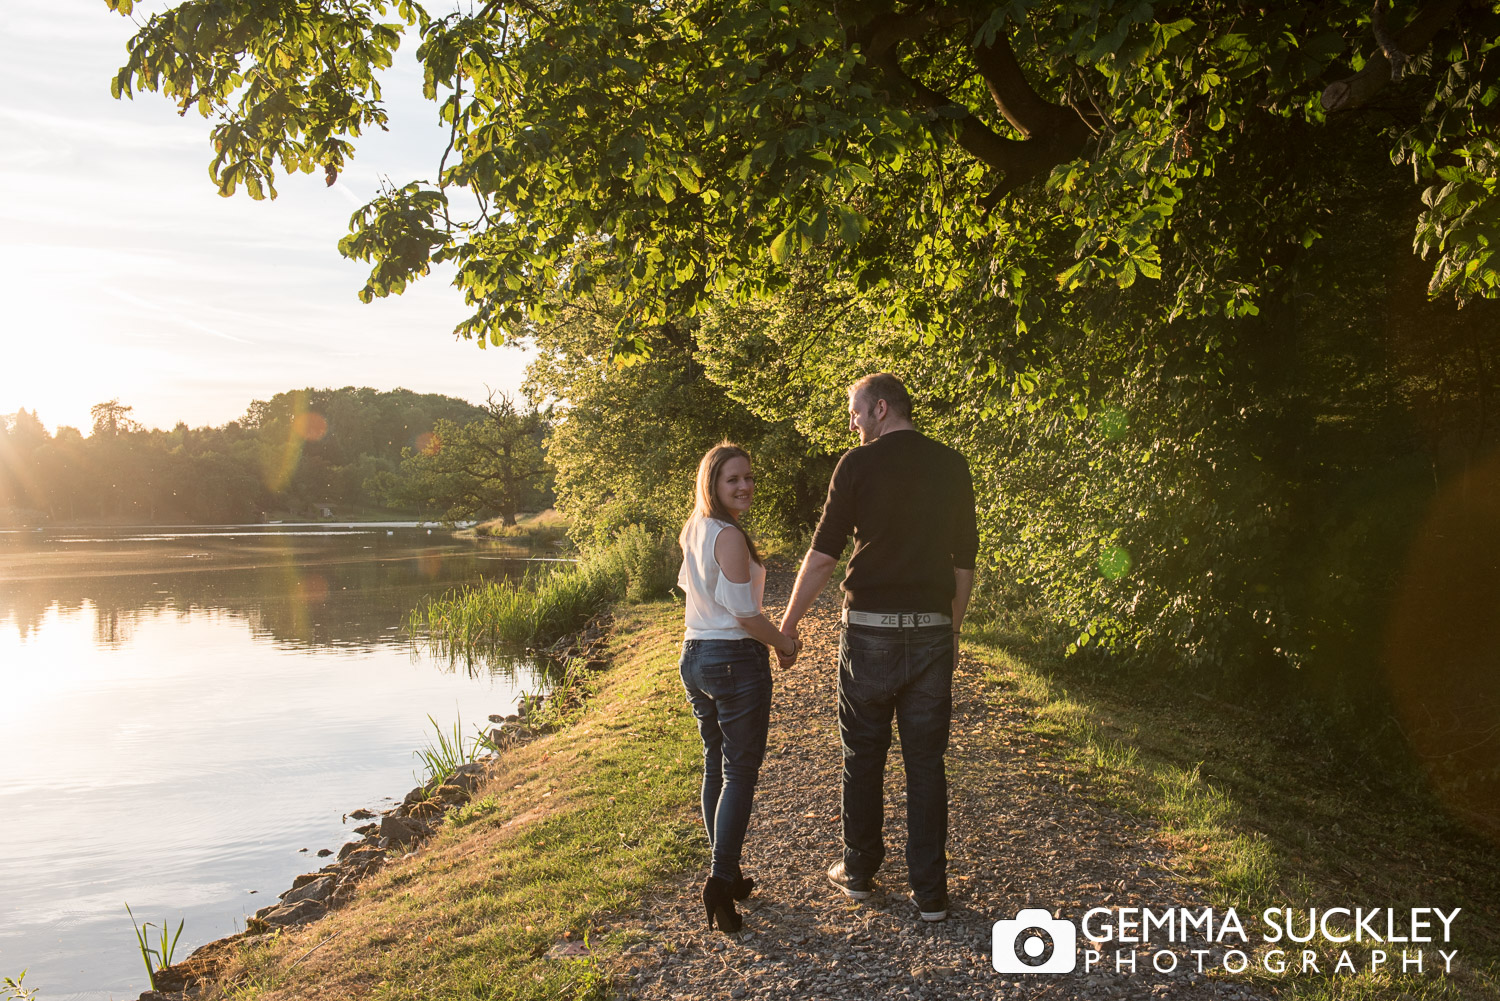 golden hour photo shoot of a couple at Coniston Hall